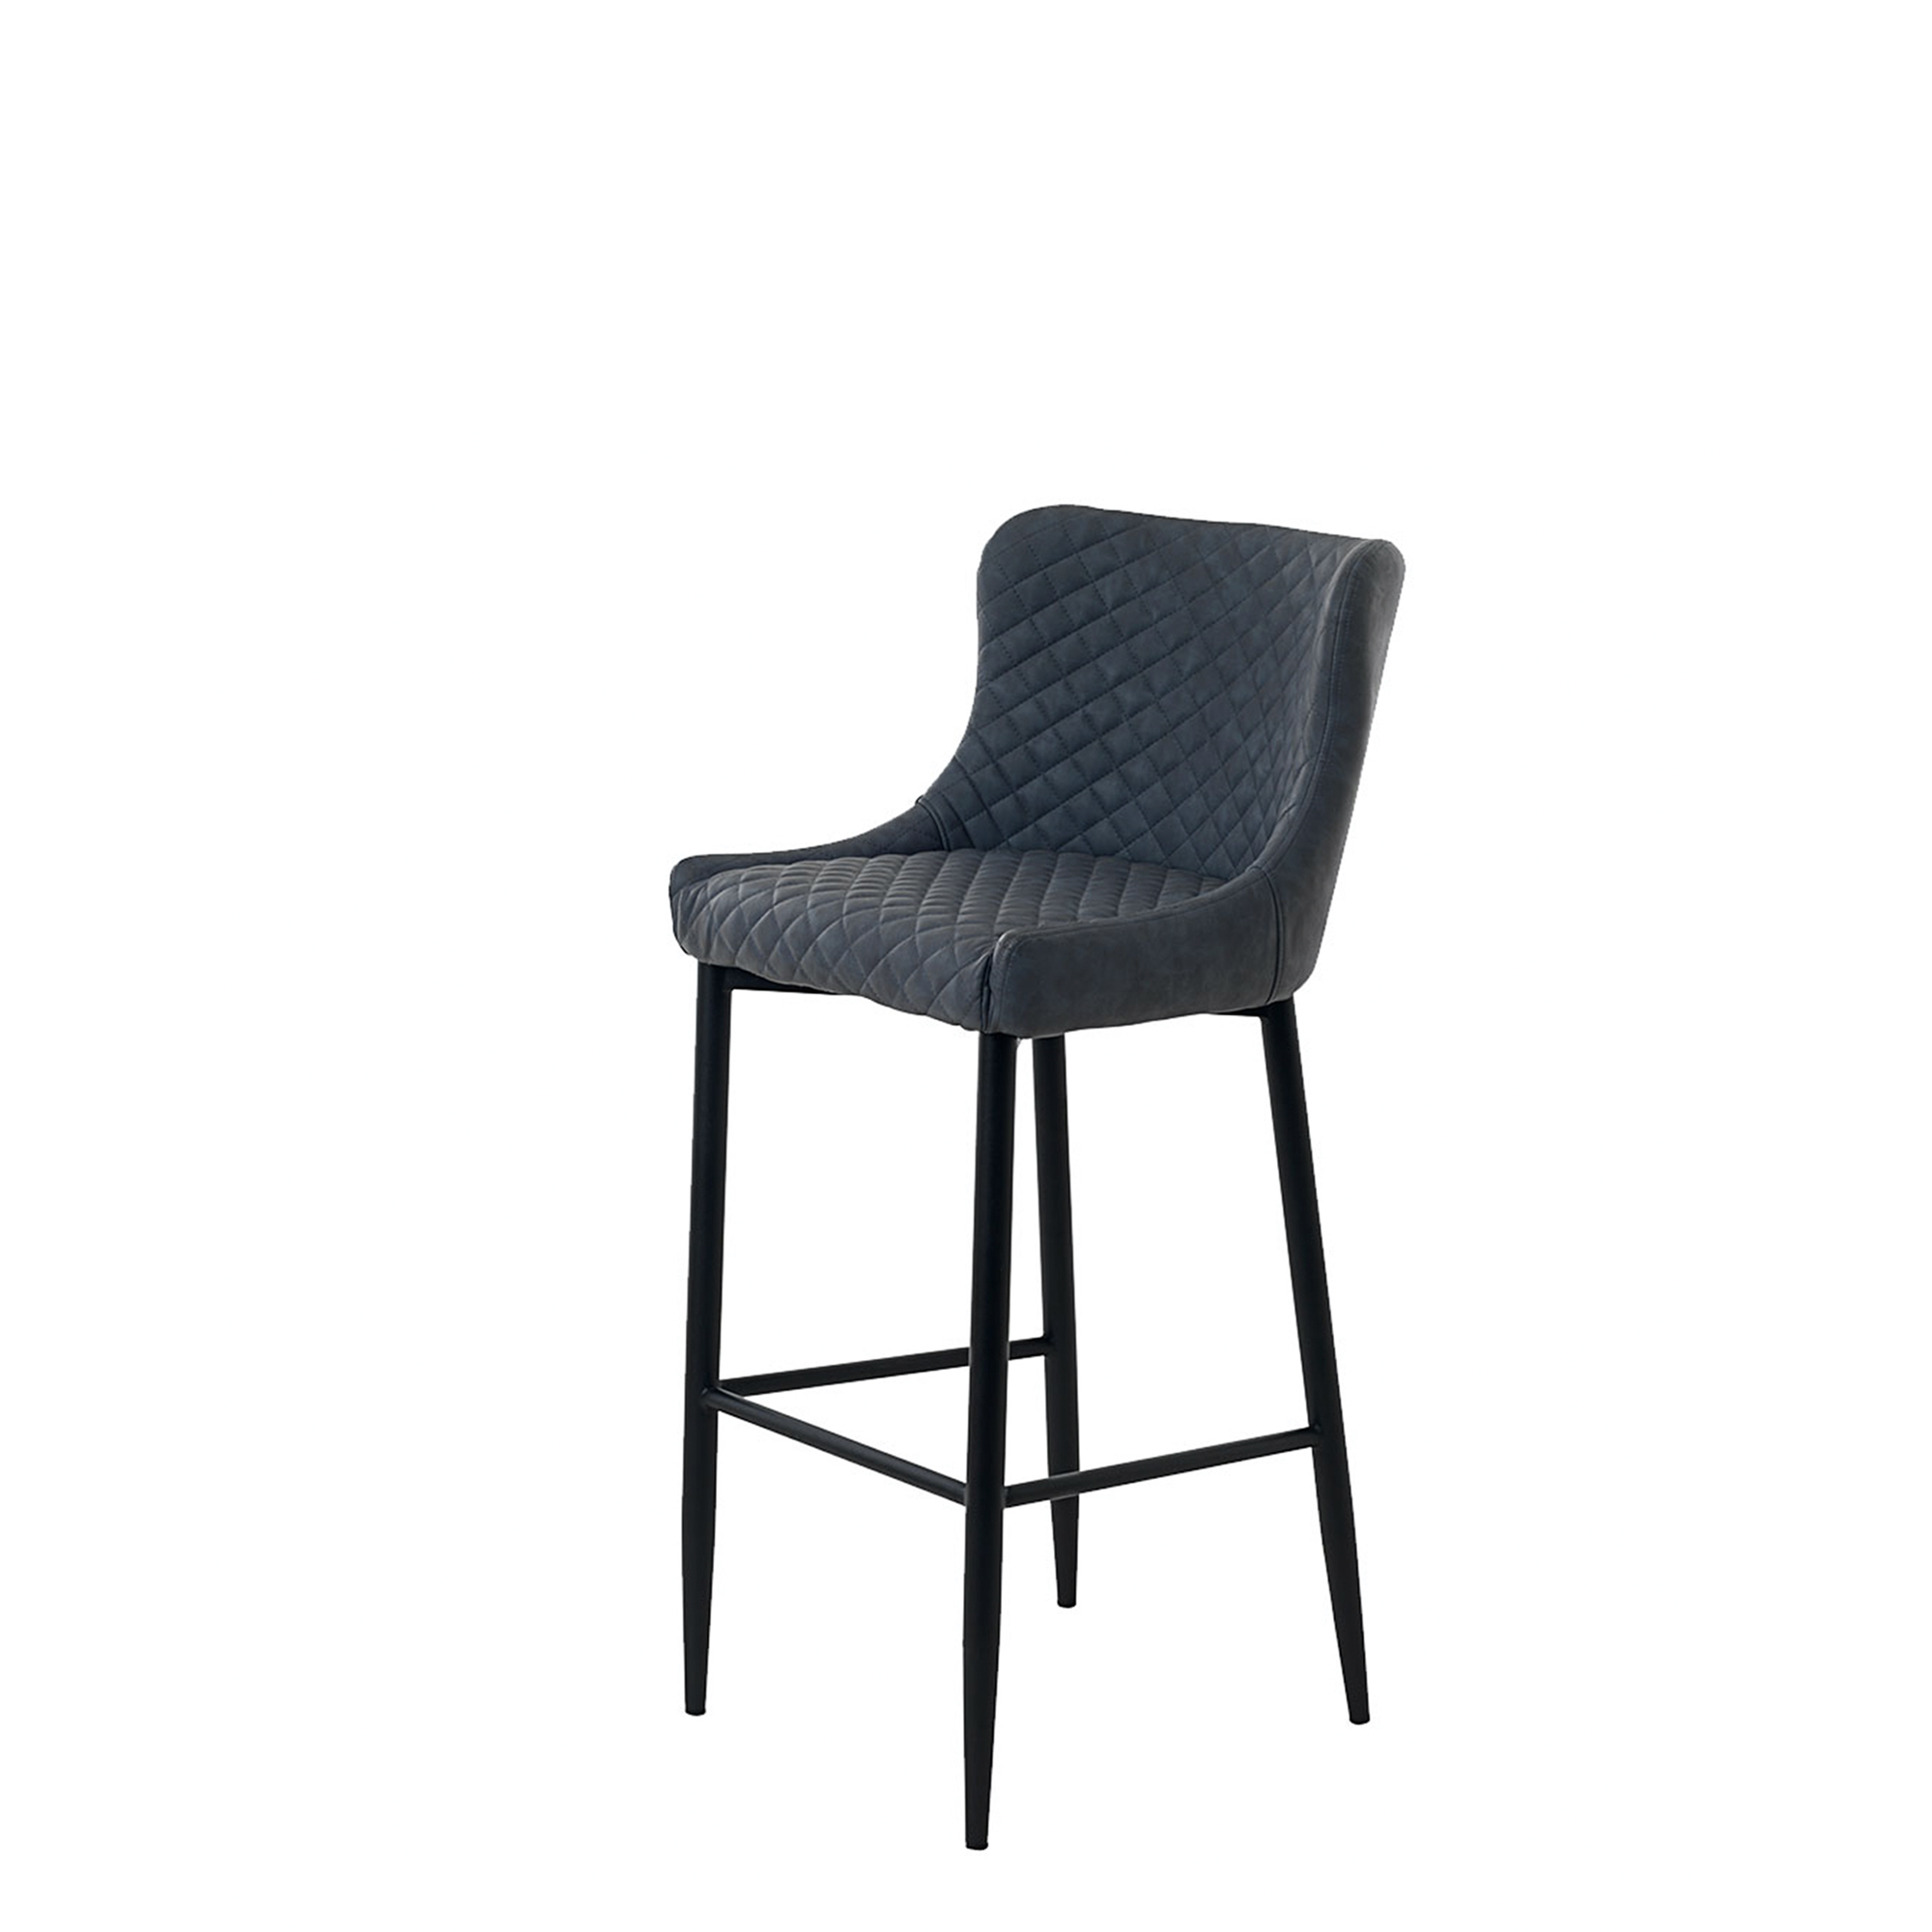 Copeland - Barstool Grey PU With Black Metal legs